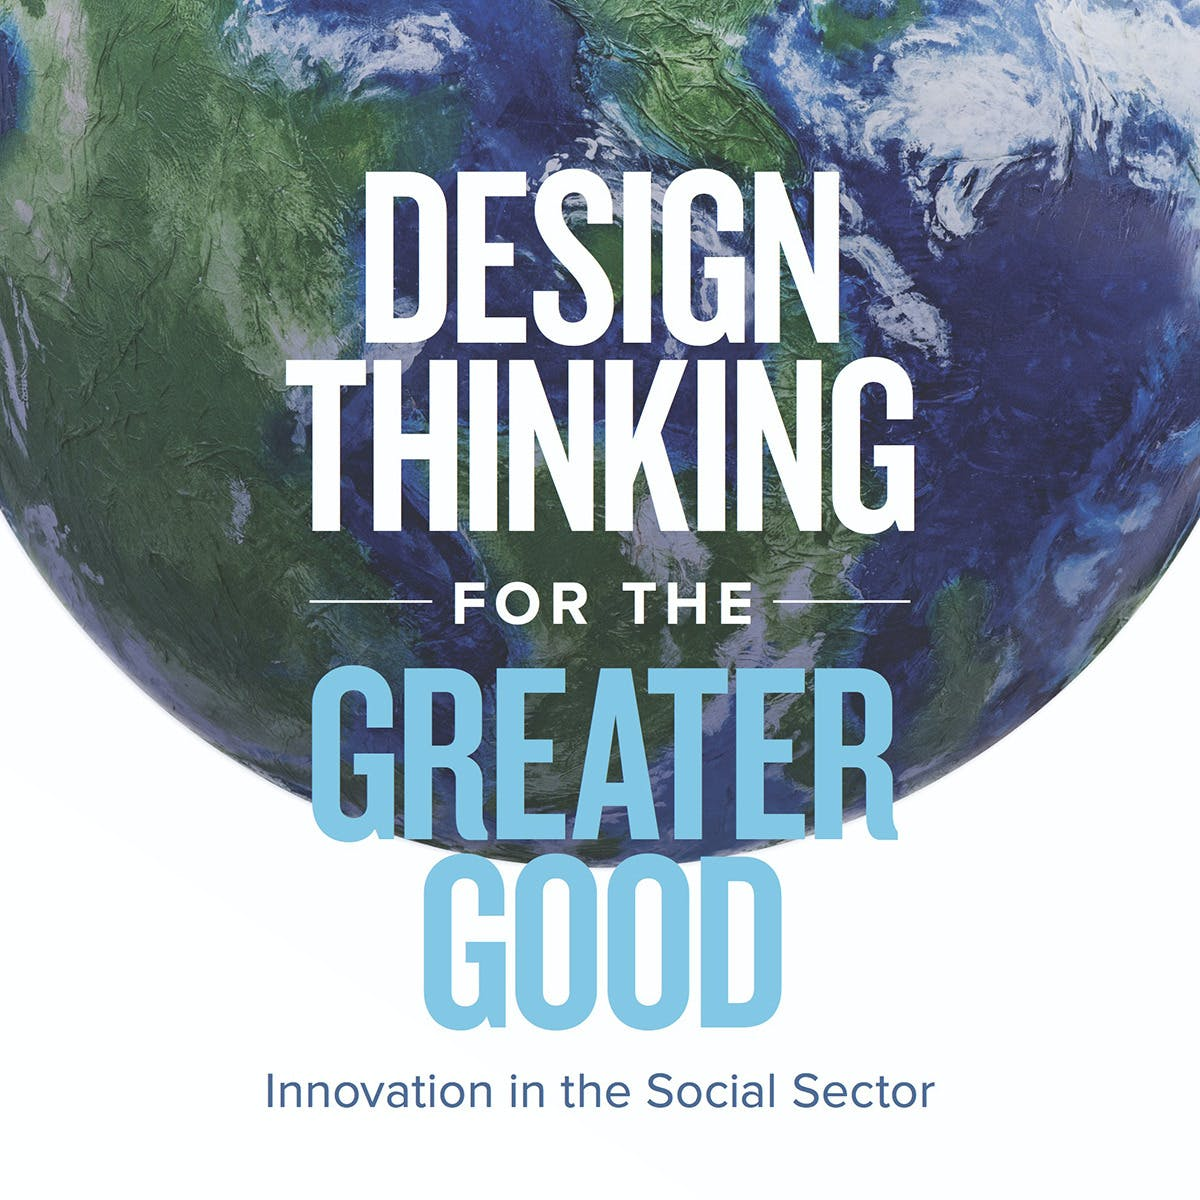 Design Thinking for the Greater Good: Innovation in the Social Sector